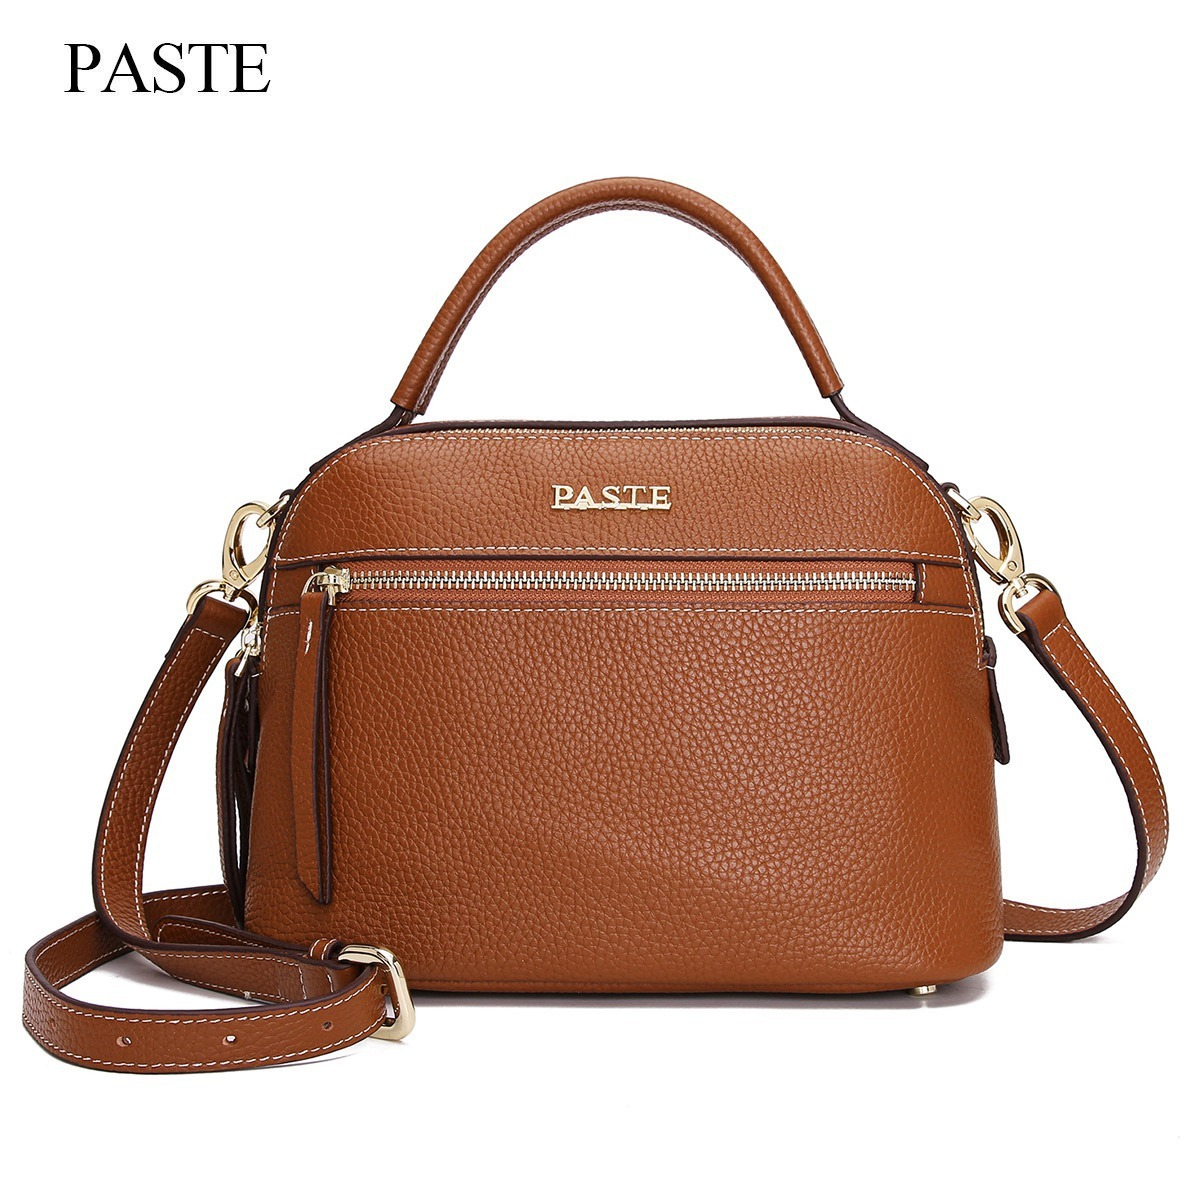 Paste 100% Cow Genuine Leather Tote Shoulder Handbags Luxury Designer Messenger Bags Shell Type Crossbody  Bags For Ladies PT38 women shoulder bags leather handbags shell crossbody bag brand design small single messenger bolsa tote sweet fashion style